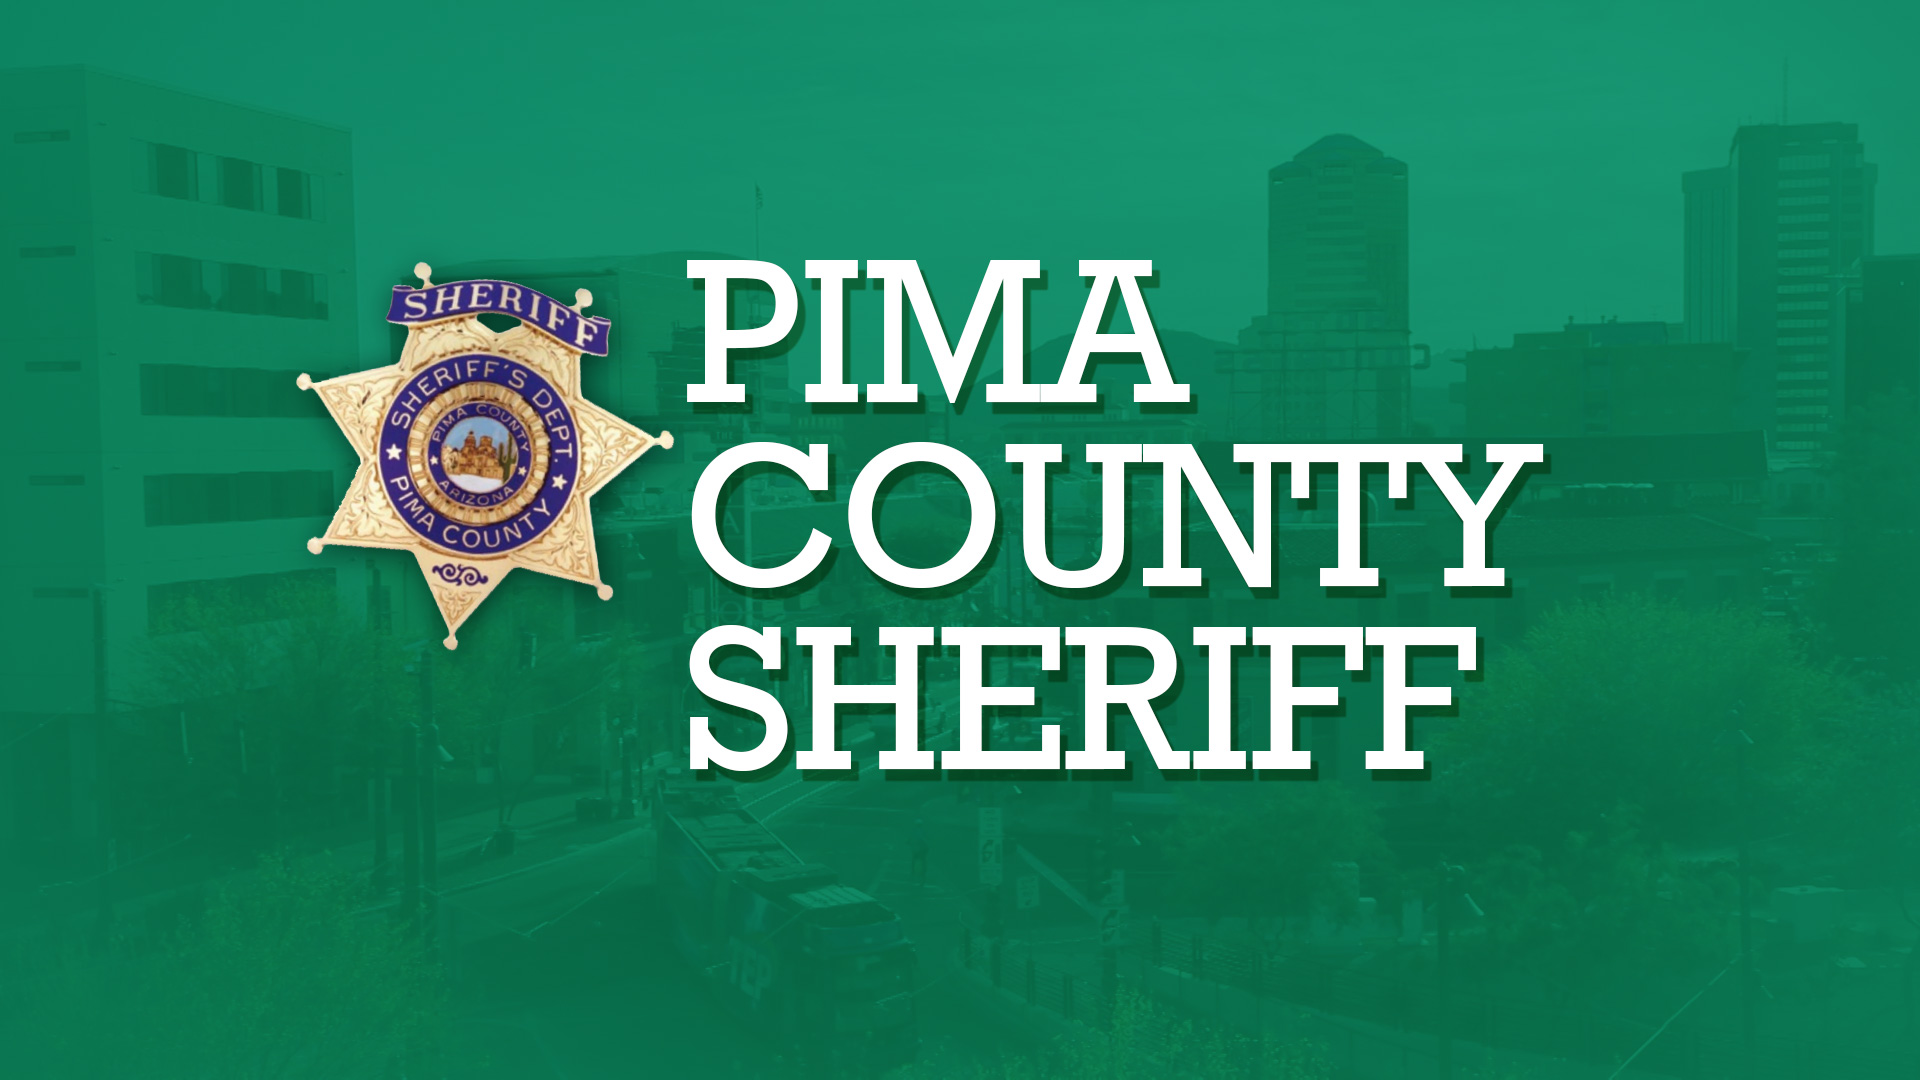 Sheriff's Race: Candidates Push Contrasting Messages - AZPM